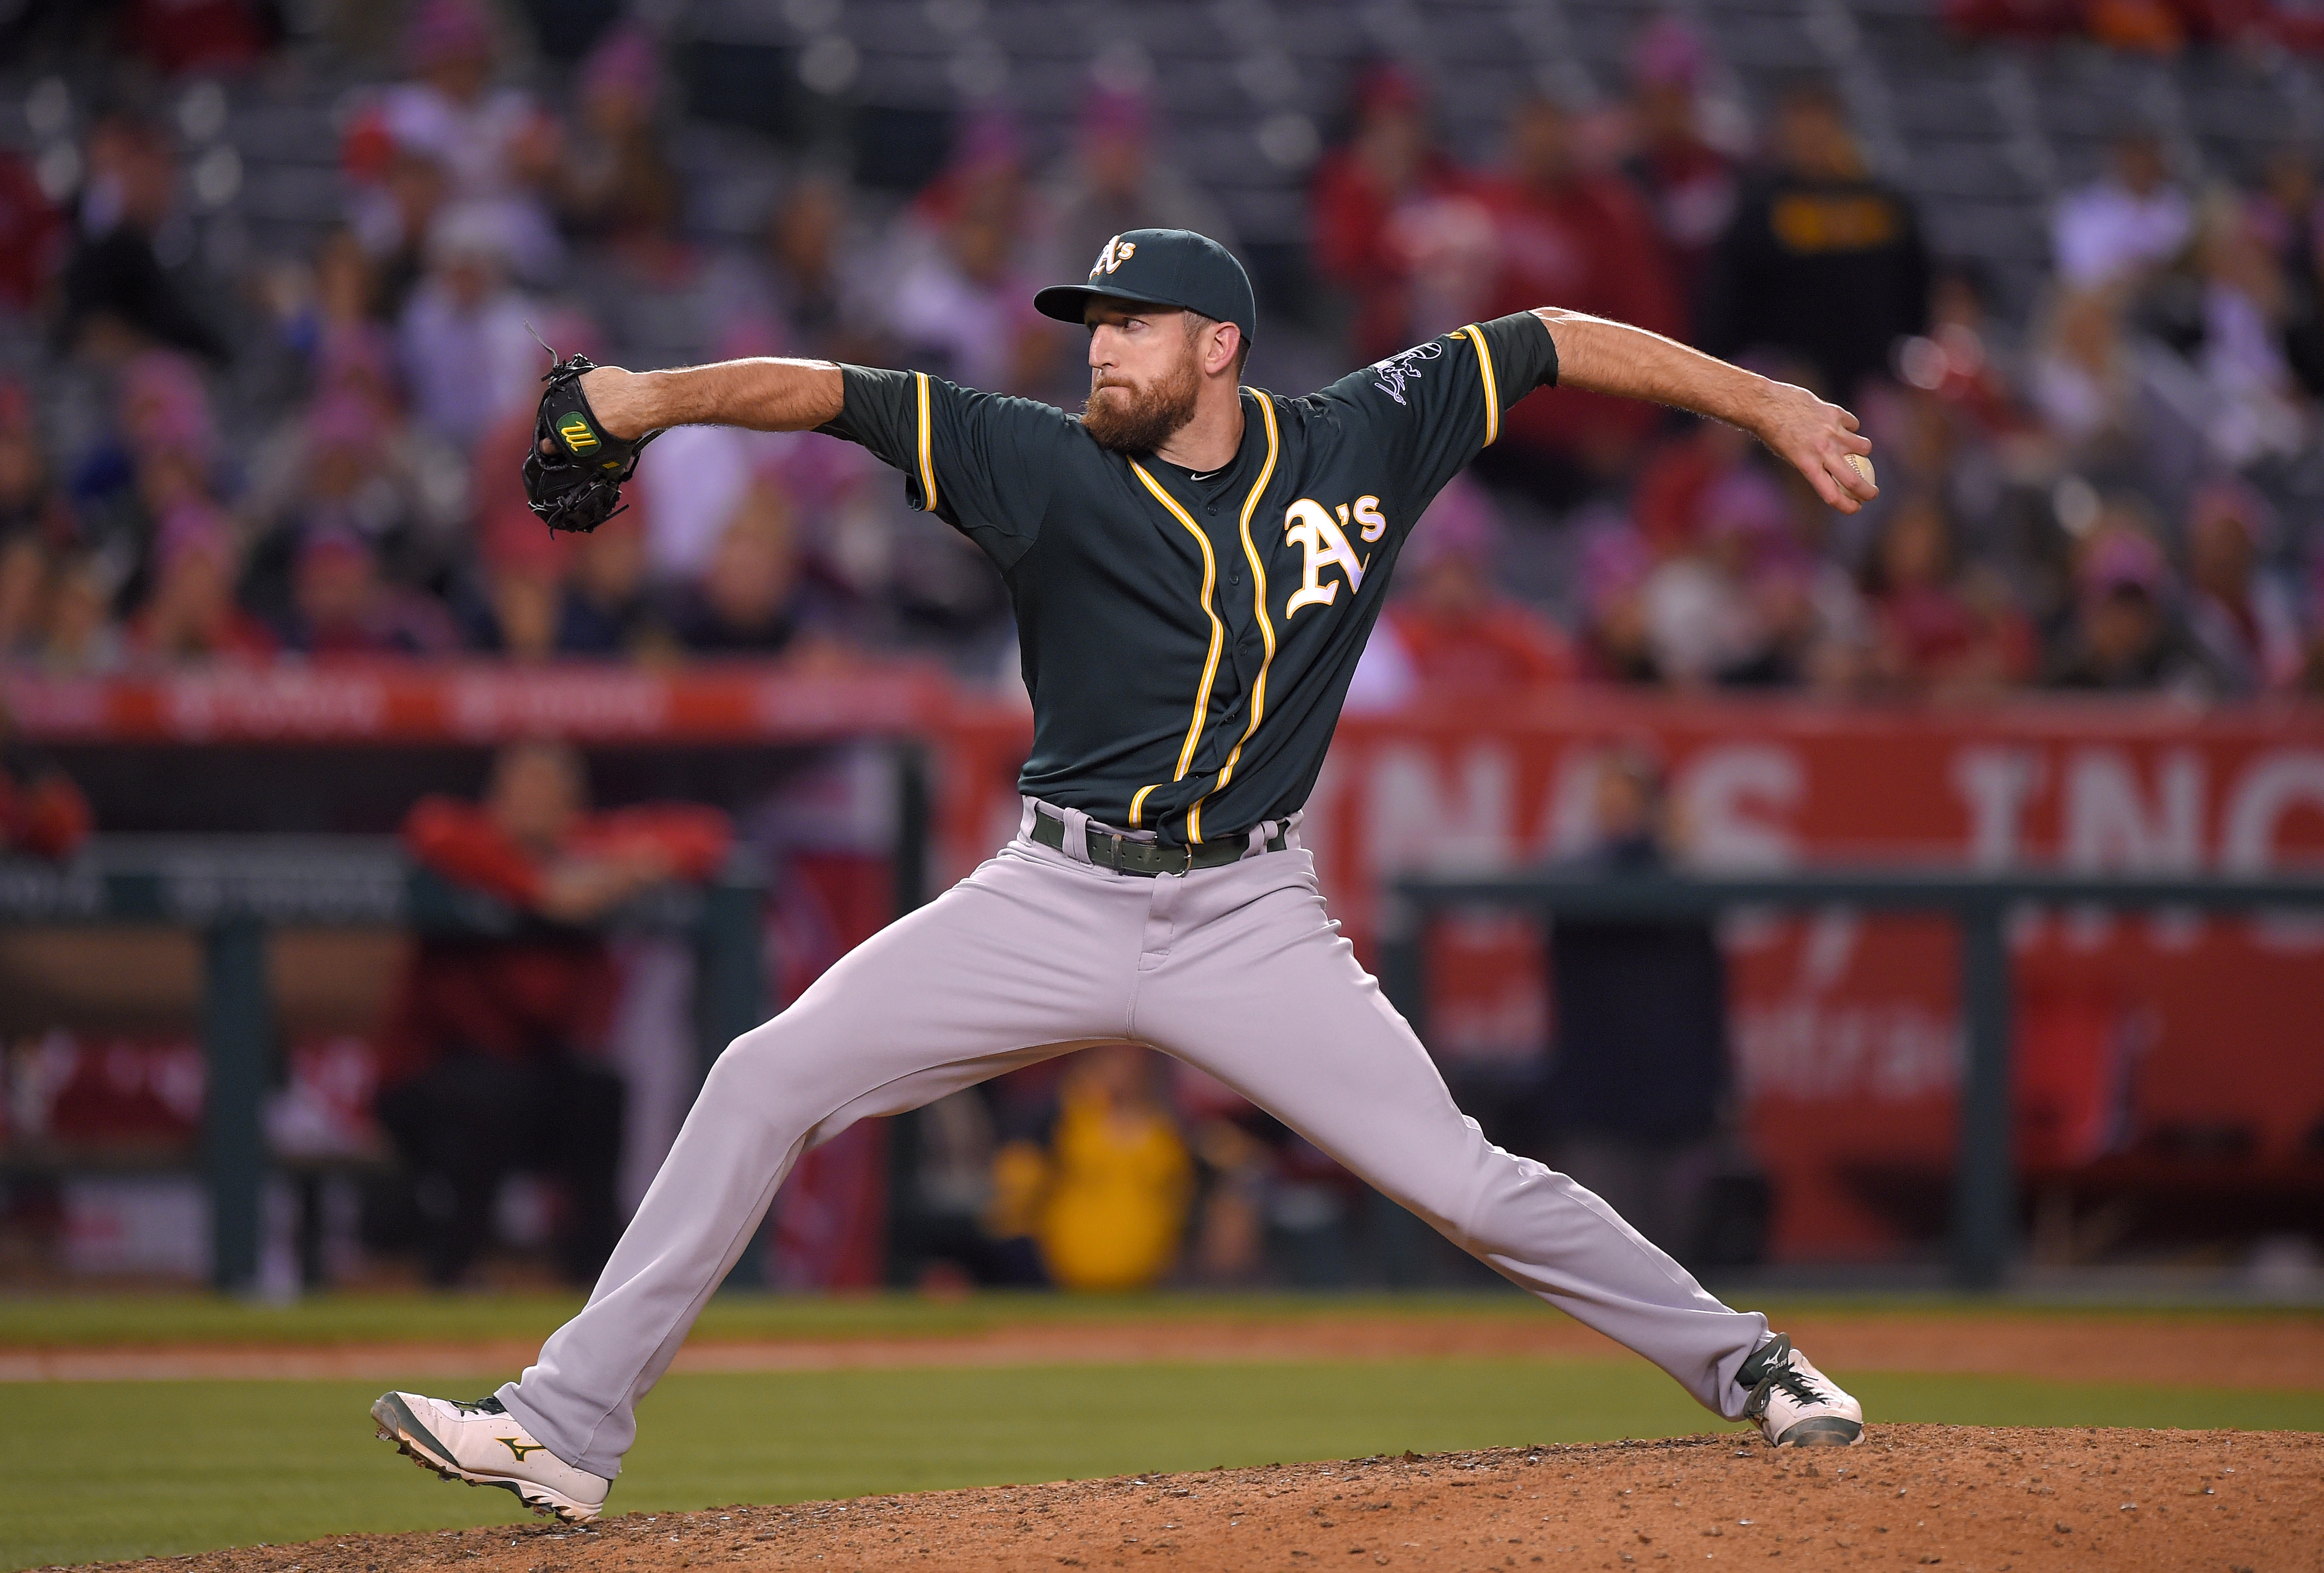 Oakland Athletics first baseman Ike Davis pitches during the eighth inning of a baseball game against the Los Angeles Angels, Tuesday, April 21, 2015, in Anaheim, Calif. (AP Photo/Mark J. Terrill)